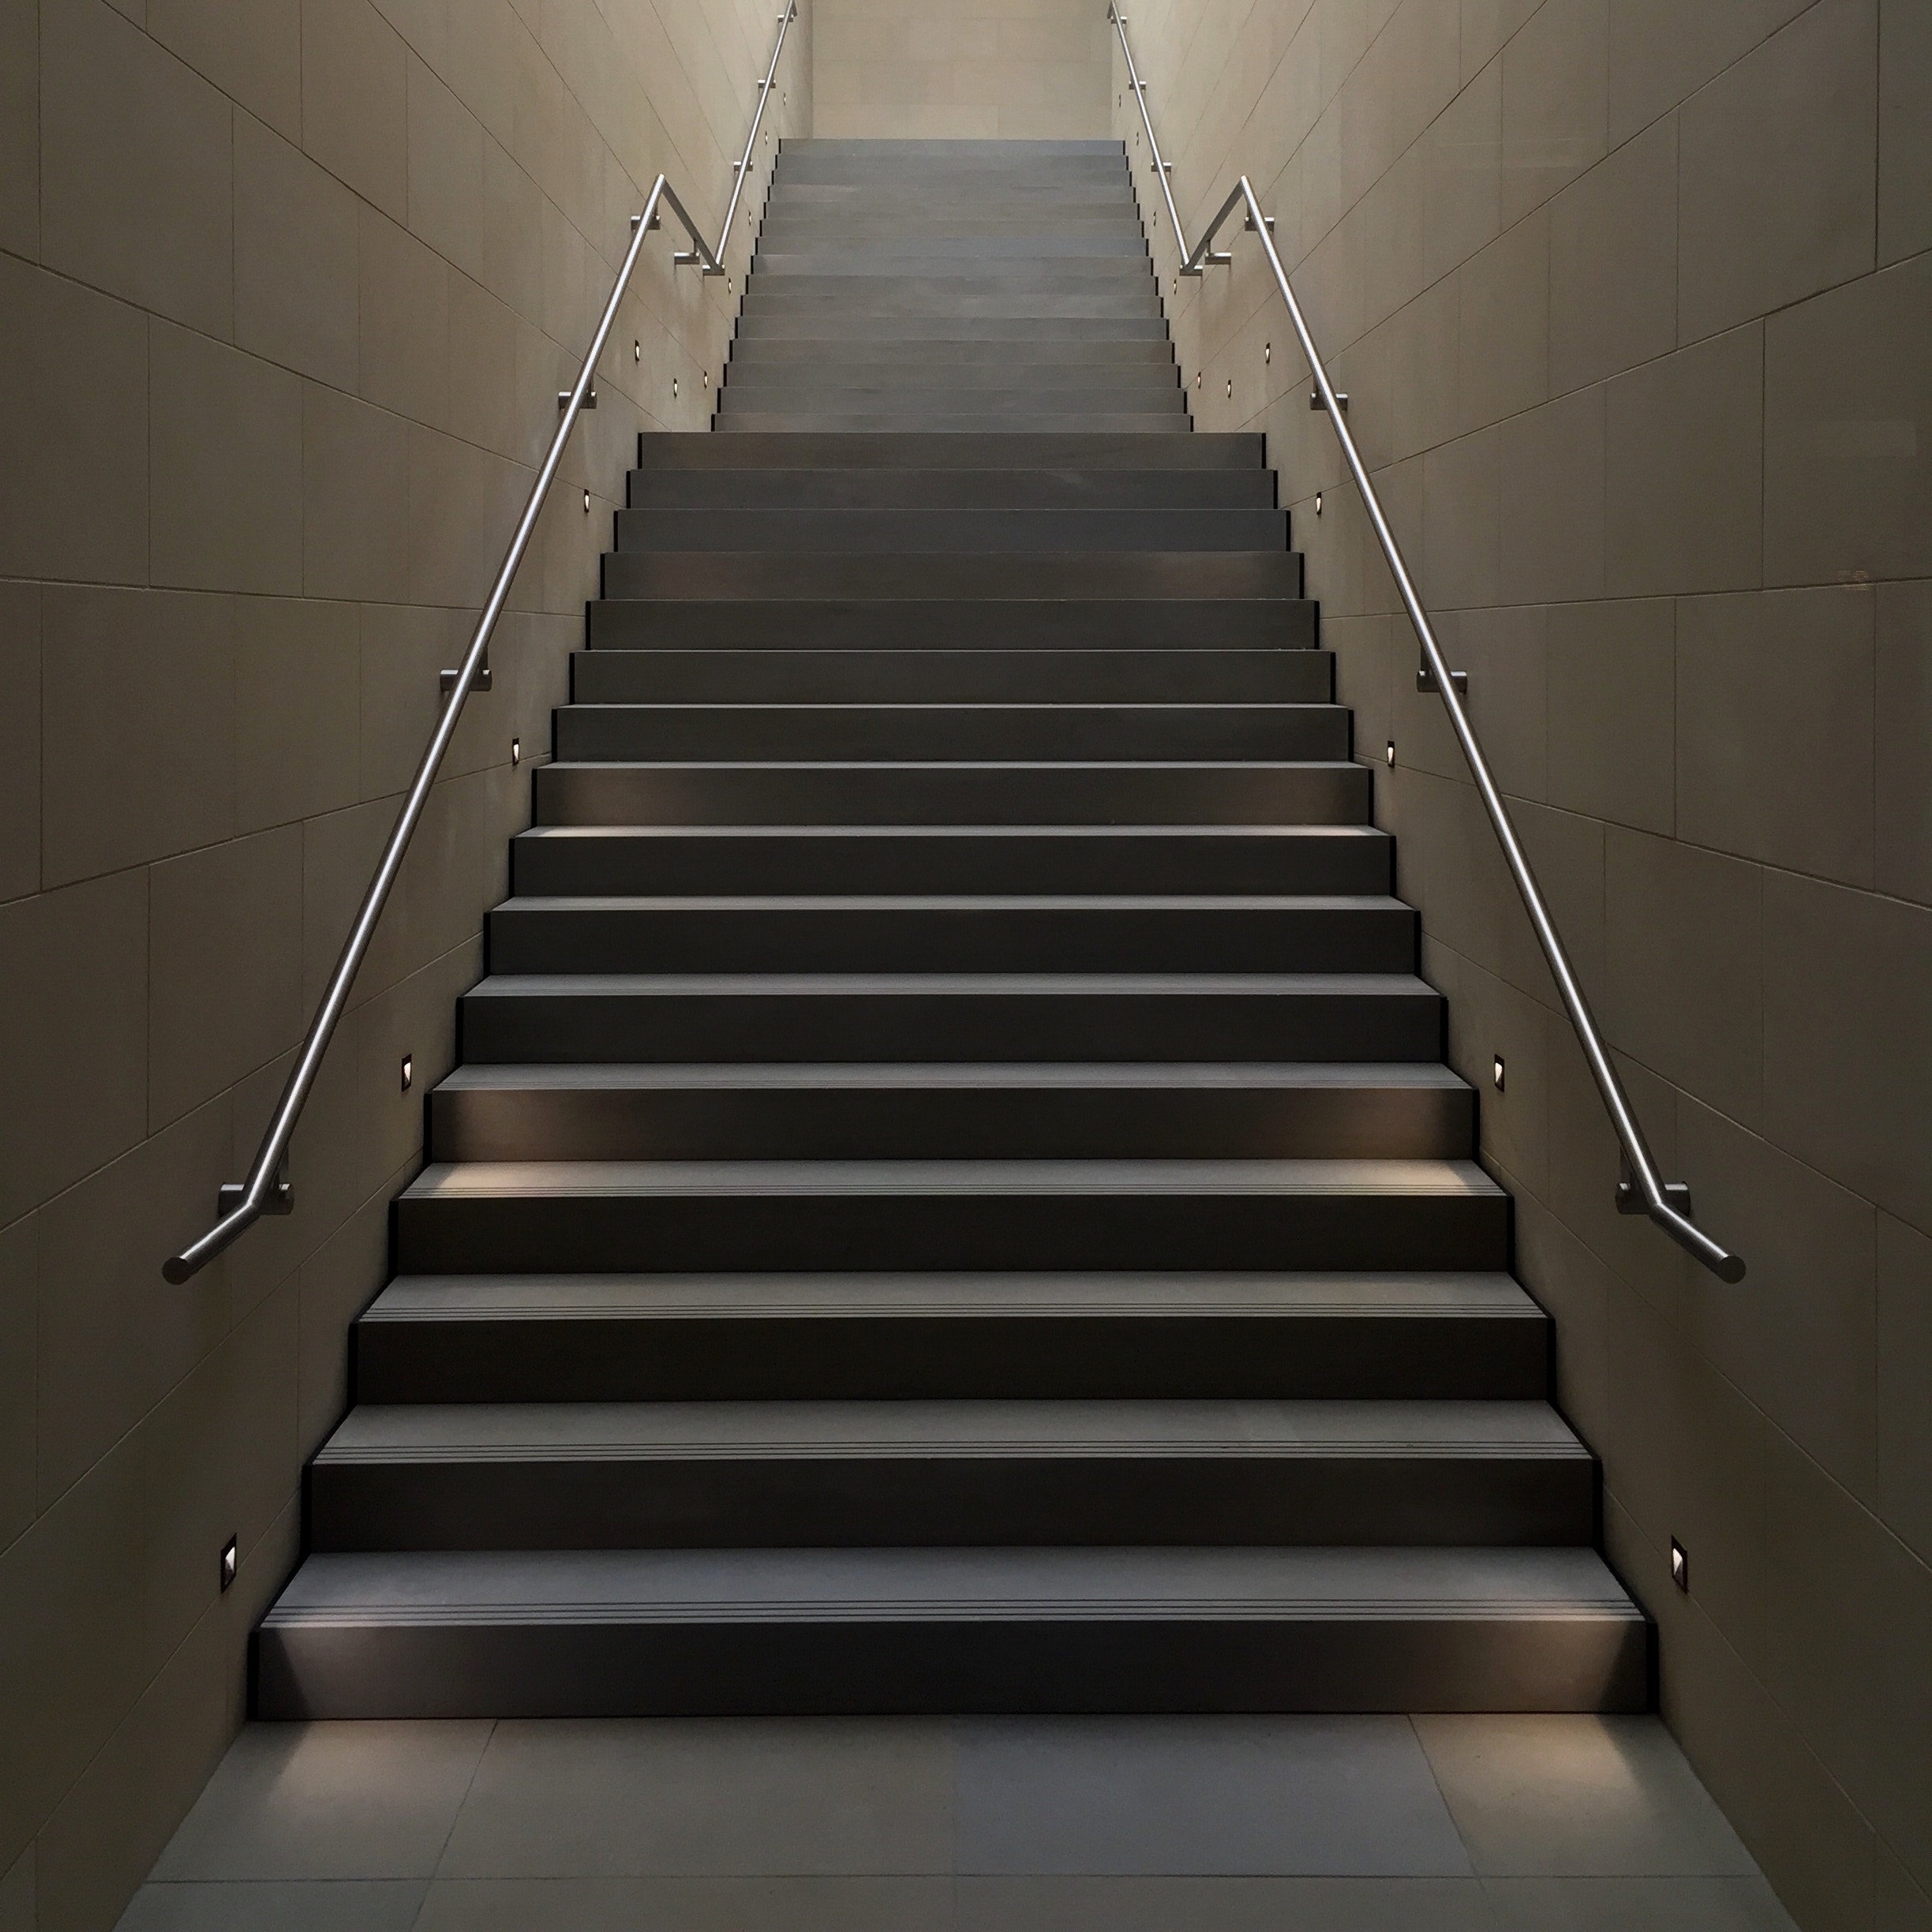 Lighting-for-stairs-recessed-wall-lights.jpg